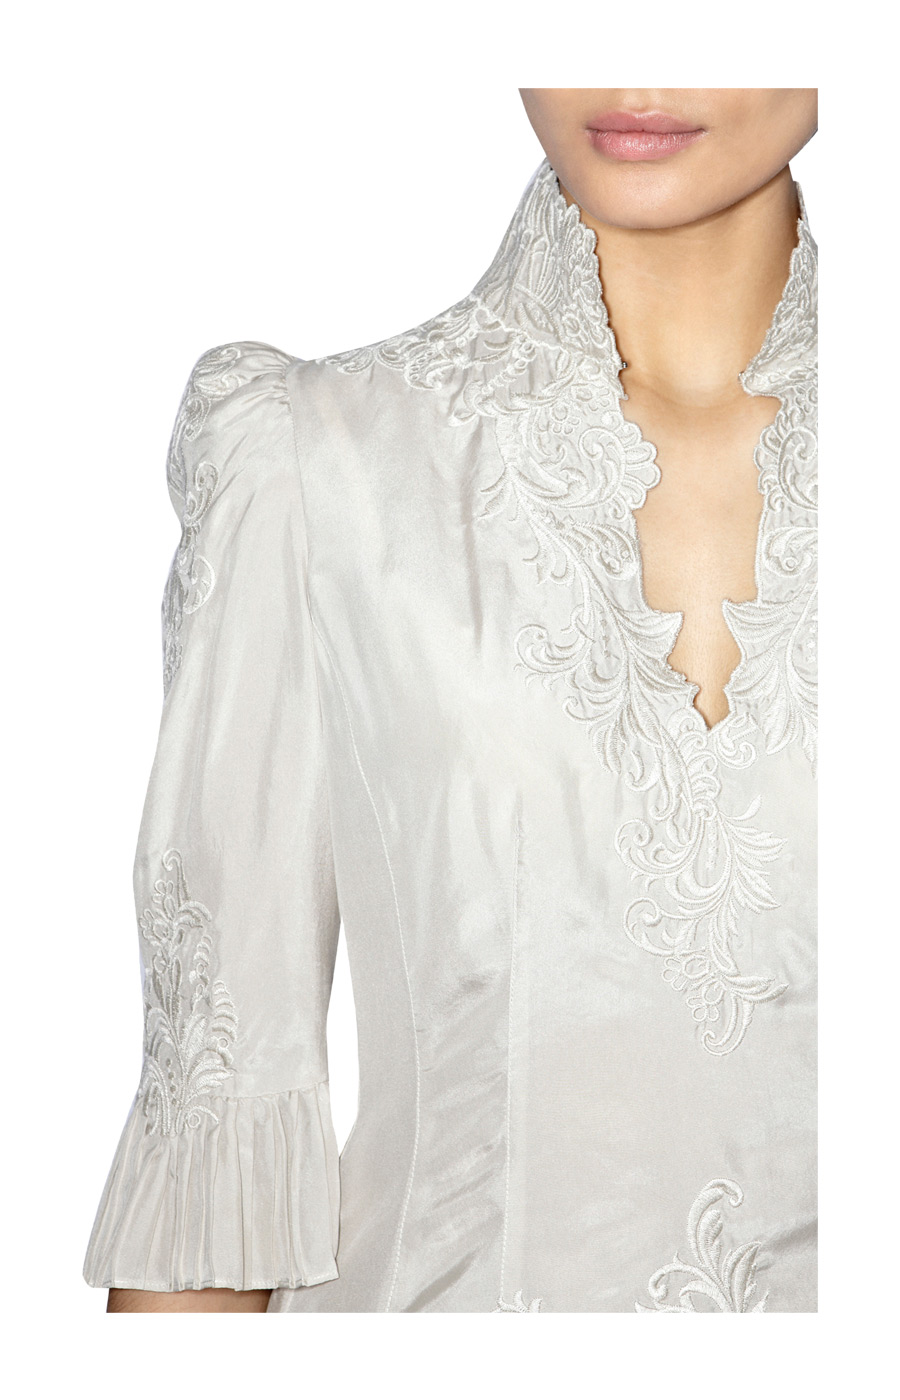 Fashion For Linda Karen Millen Lace Embroidery Blouse